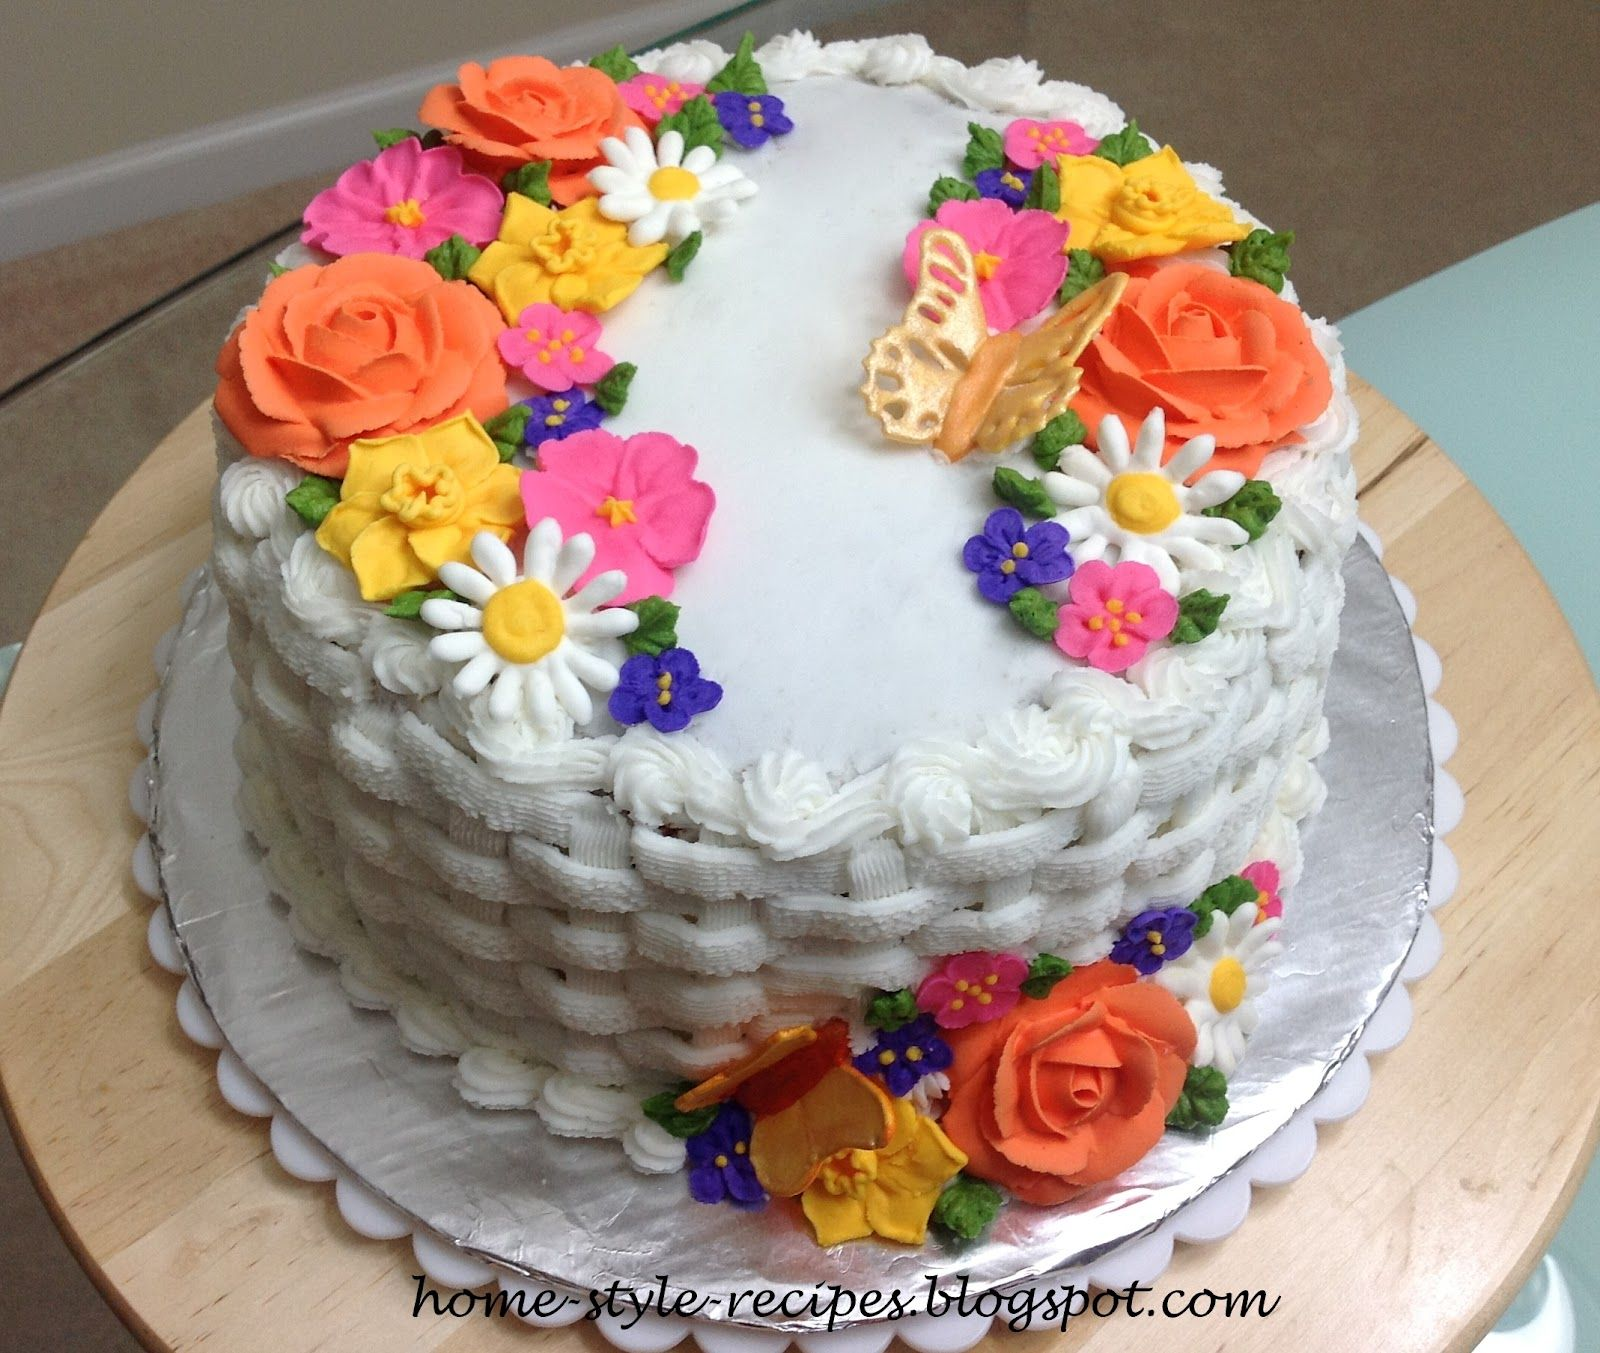 Wilton Flowers and Cake